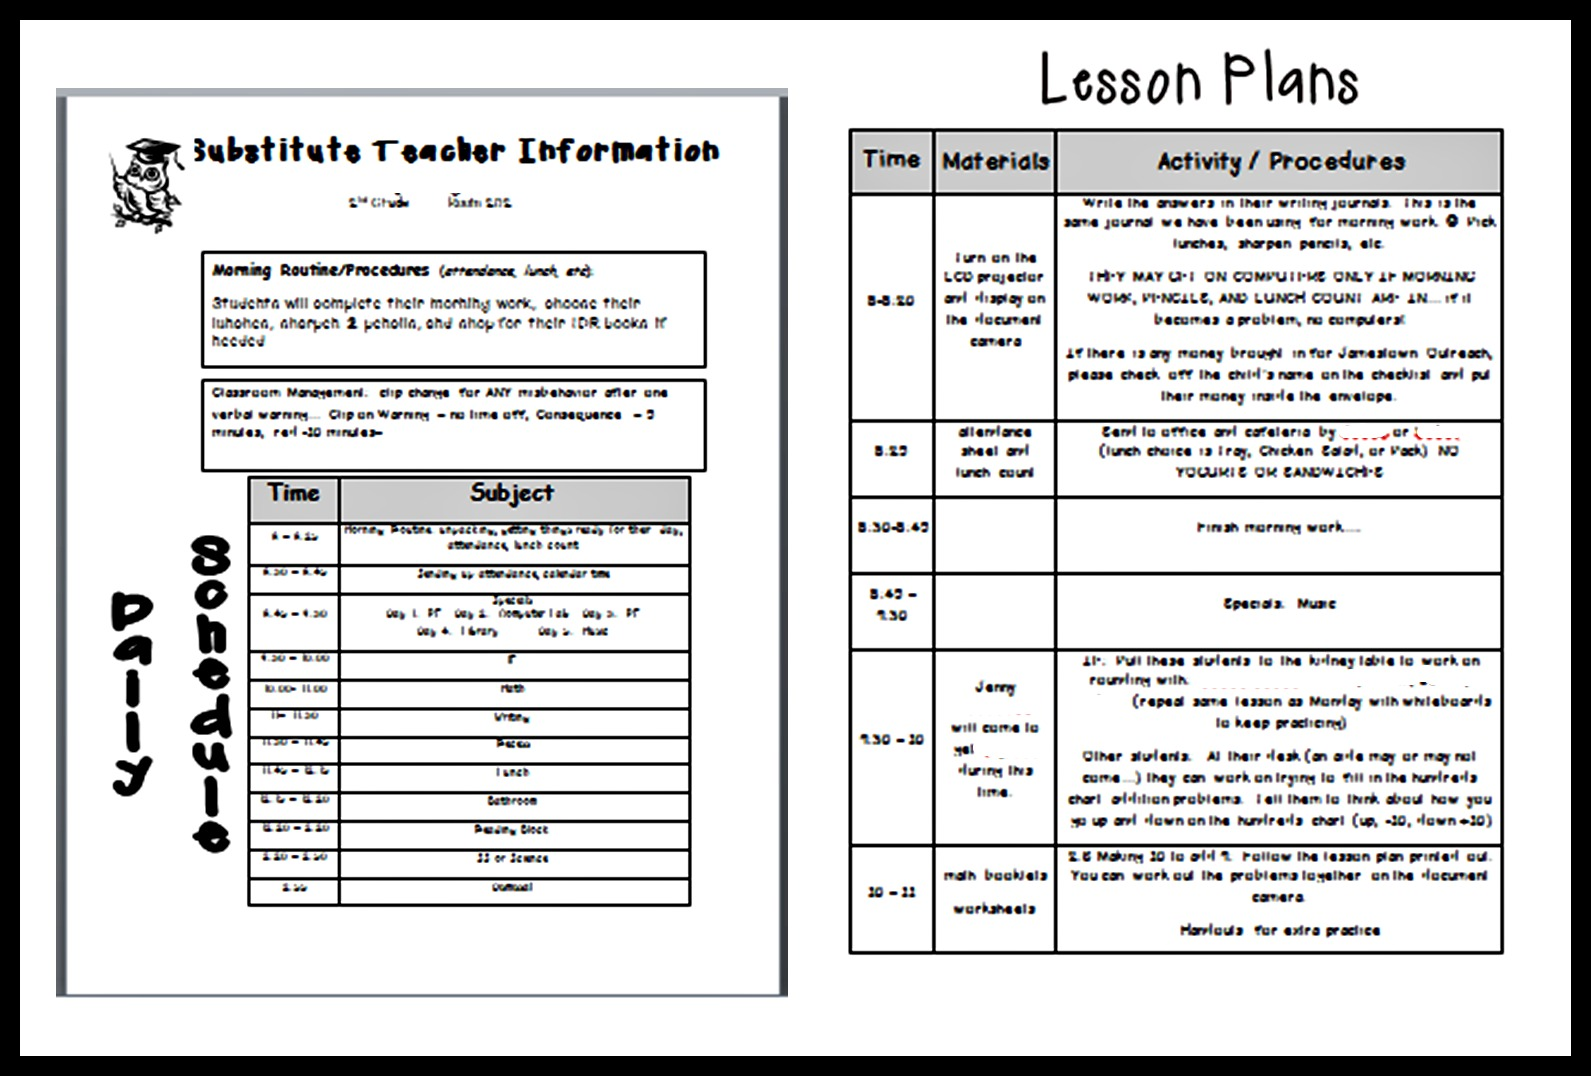 Lesson Plan Template For Substitute Teacher